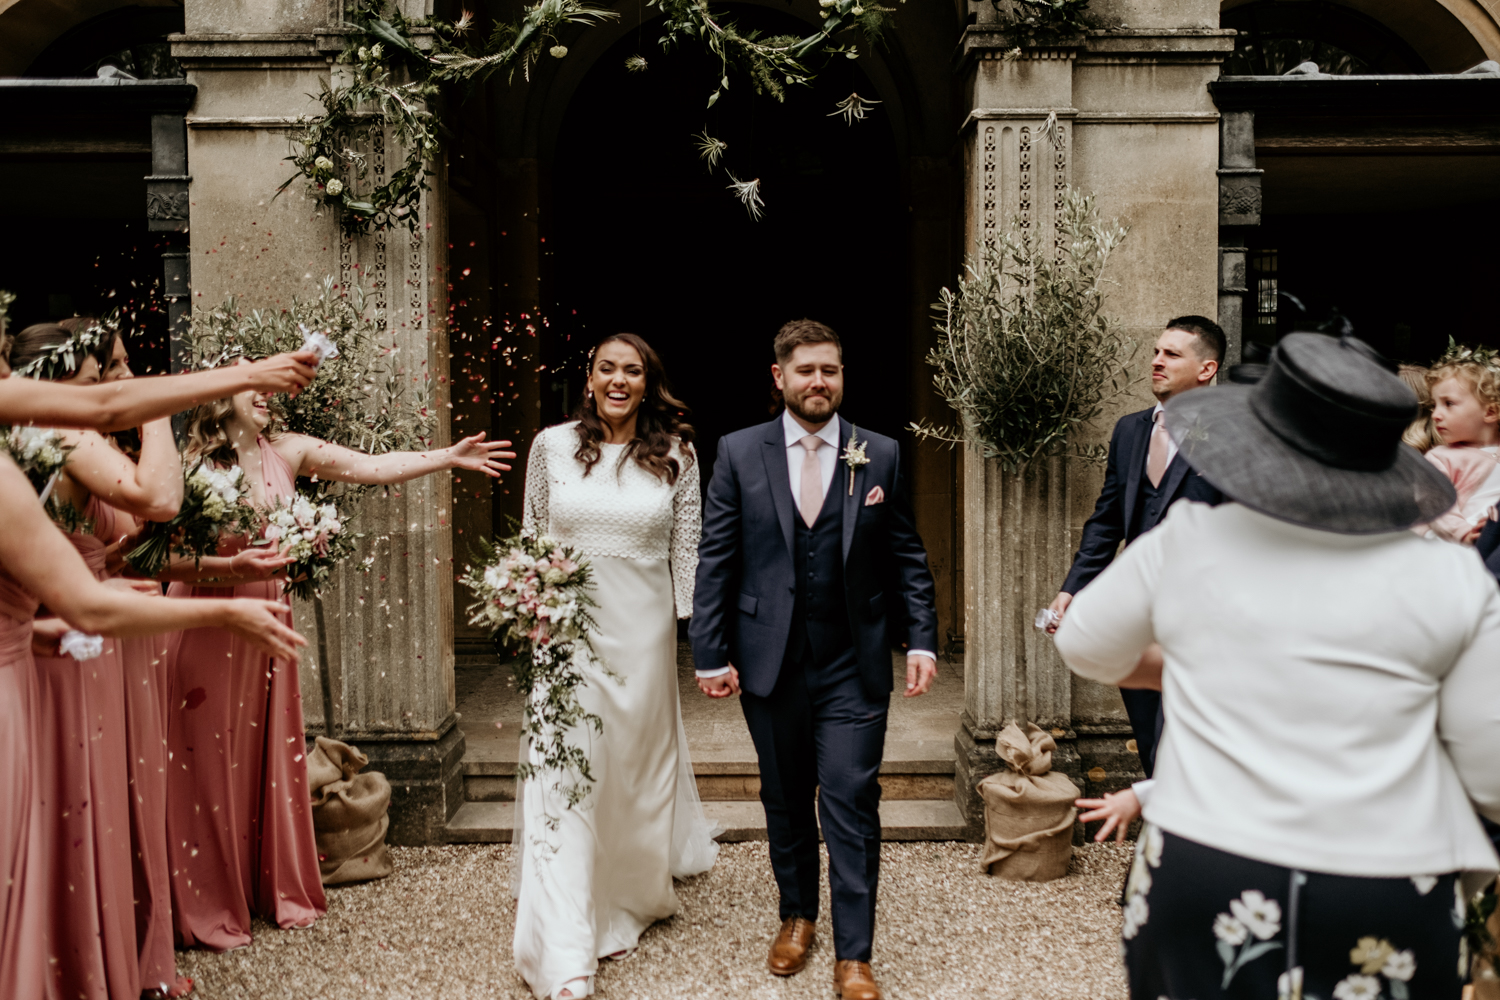 bride and groom walking down the aisle after their outdoor ceremony at Coombe Lodge Blagdon wedding venue